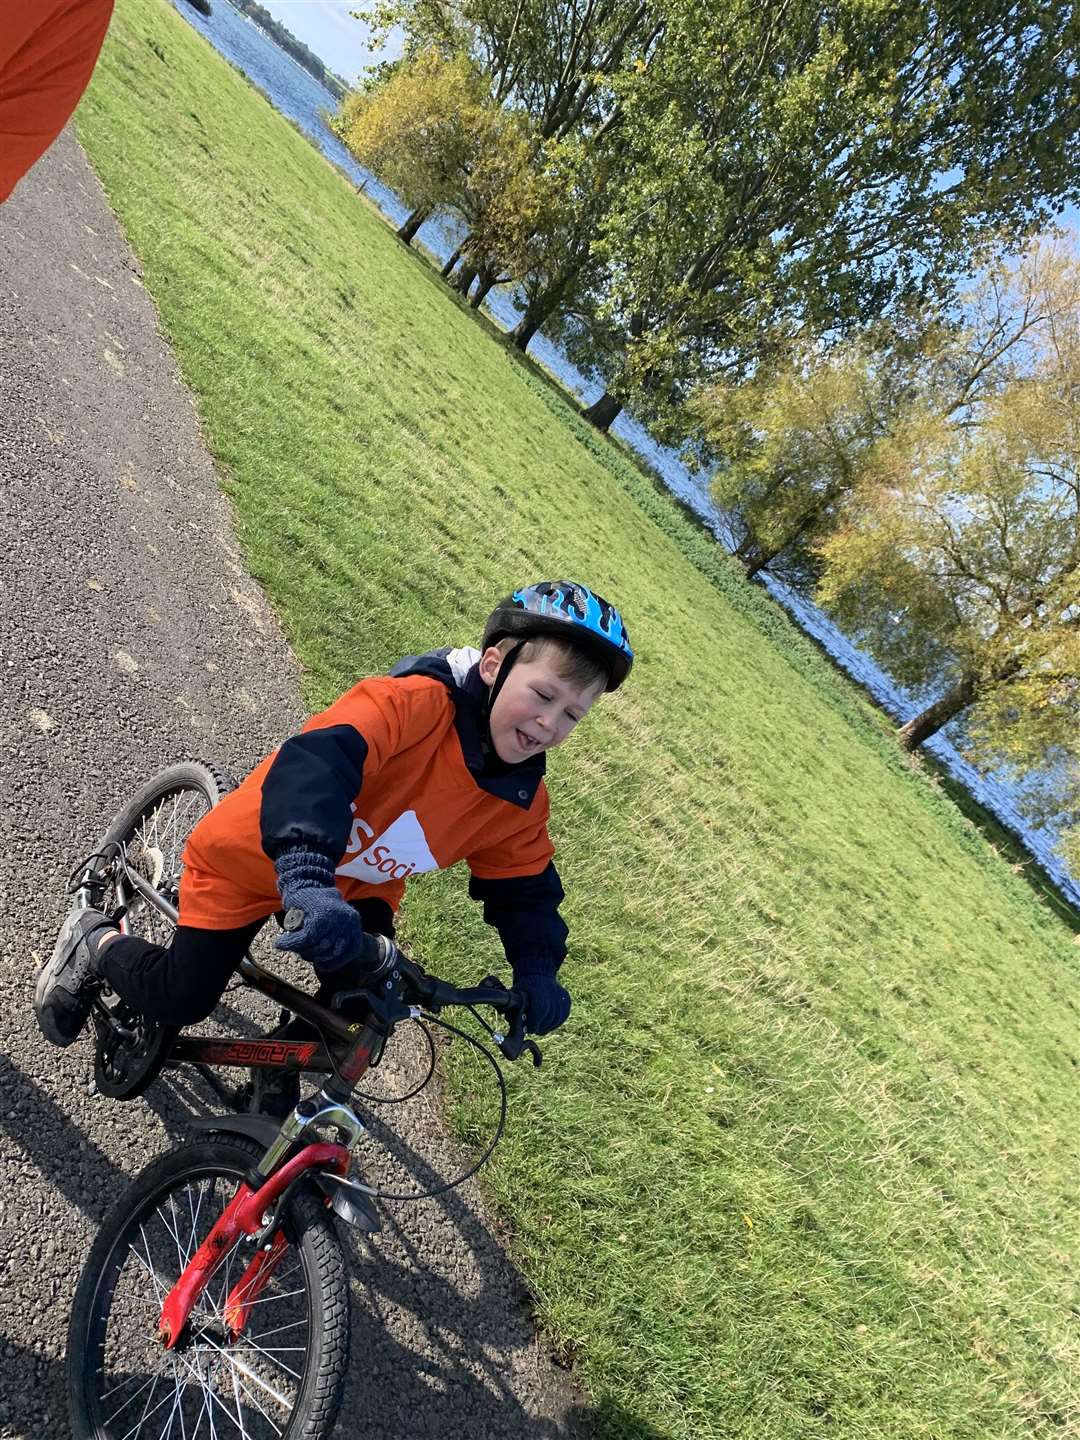 Charlie Wood has completed his charity bike ride. (20800307)